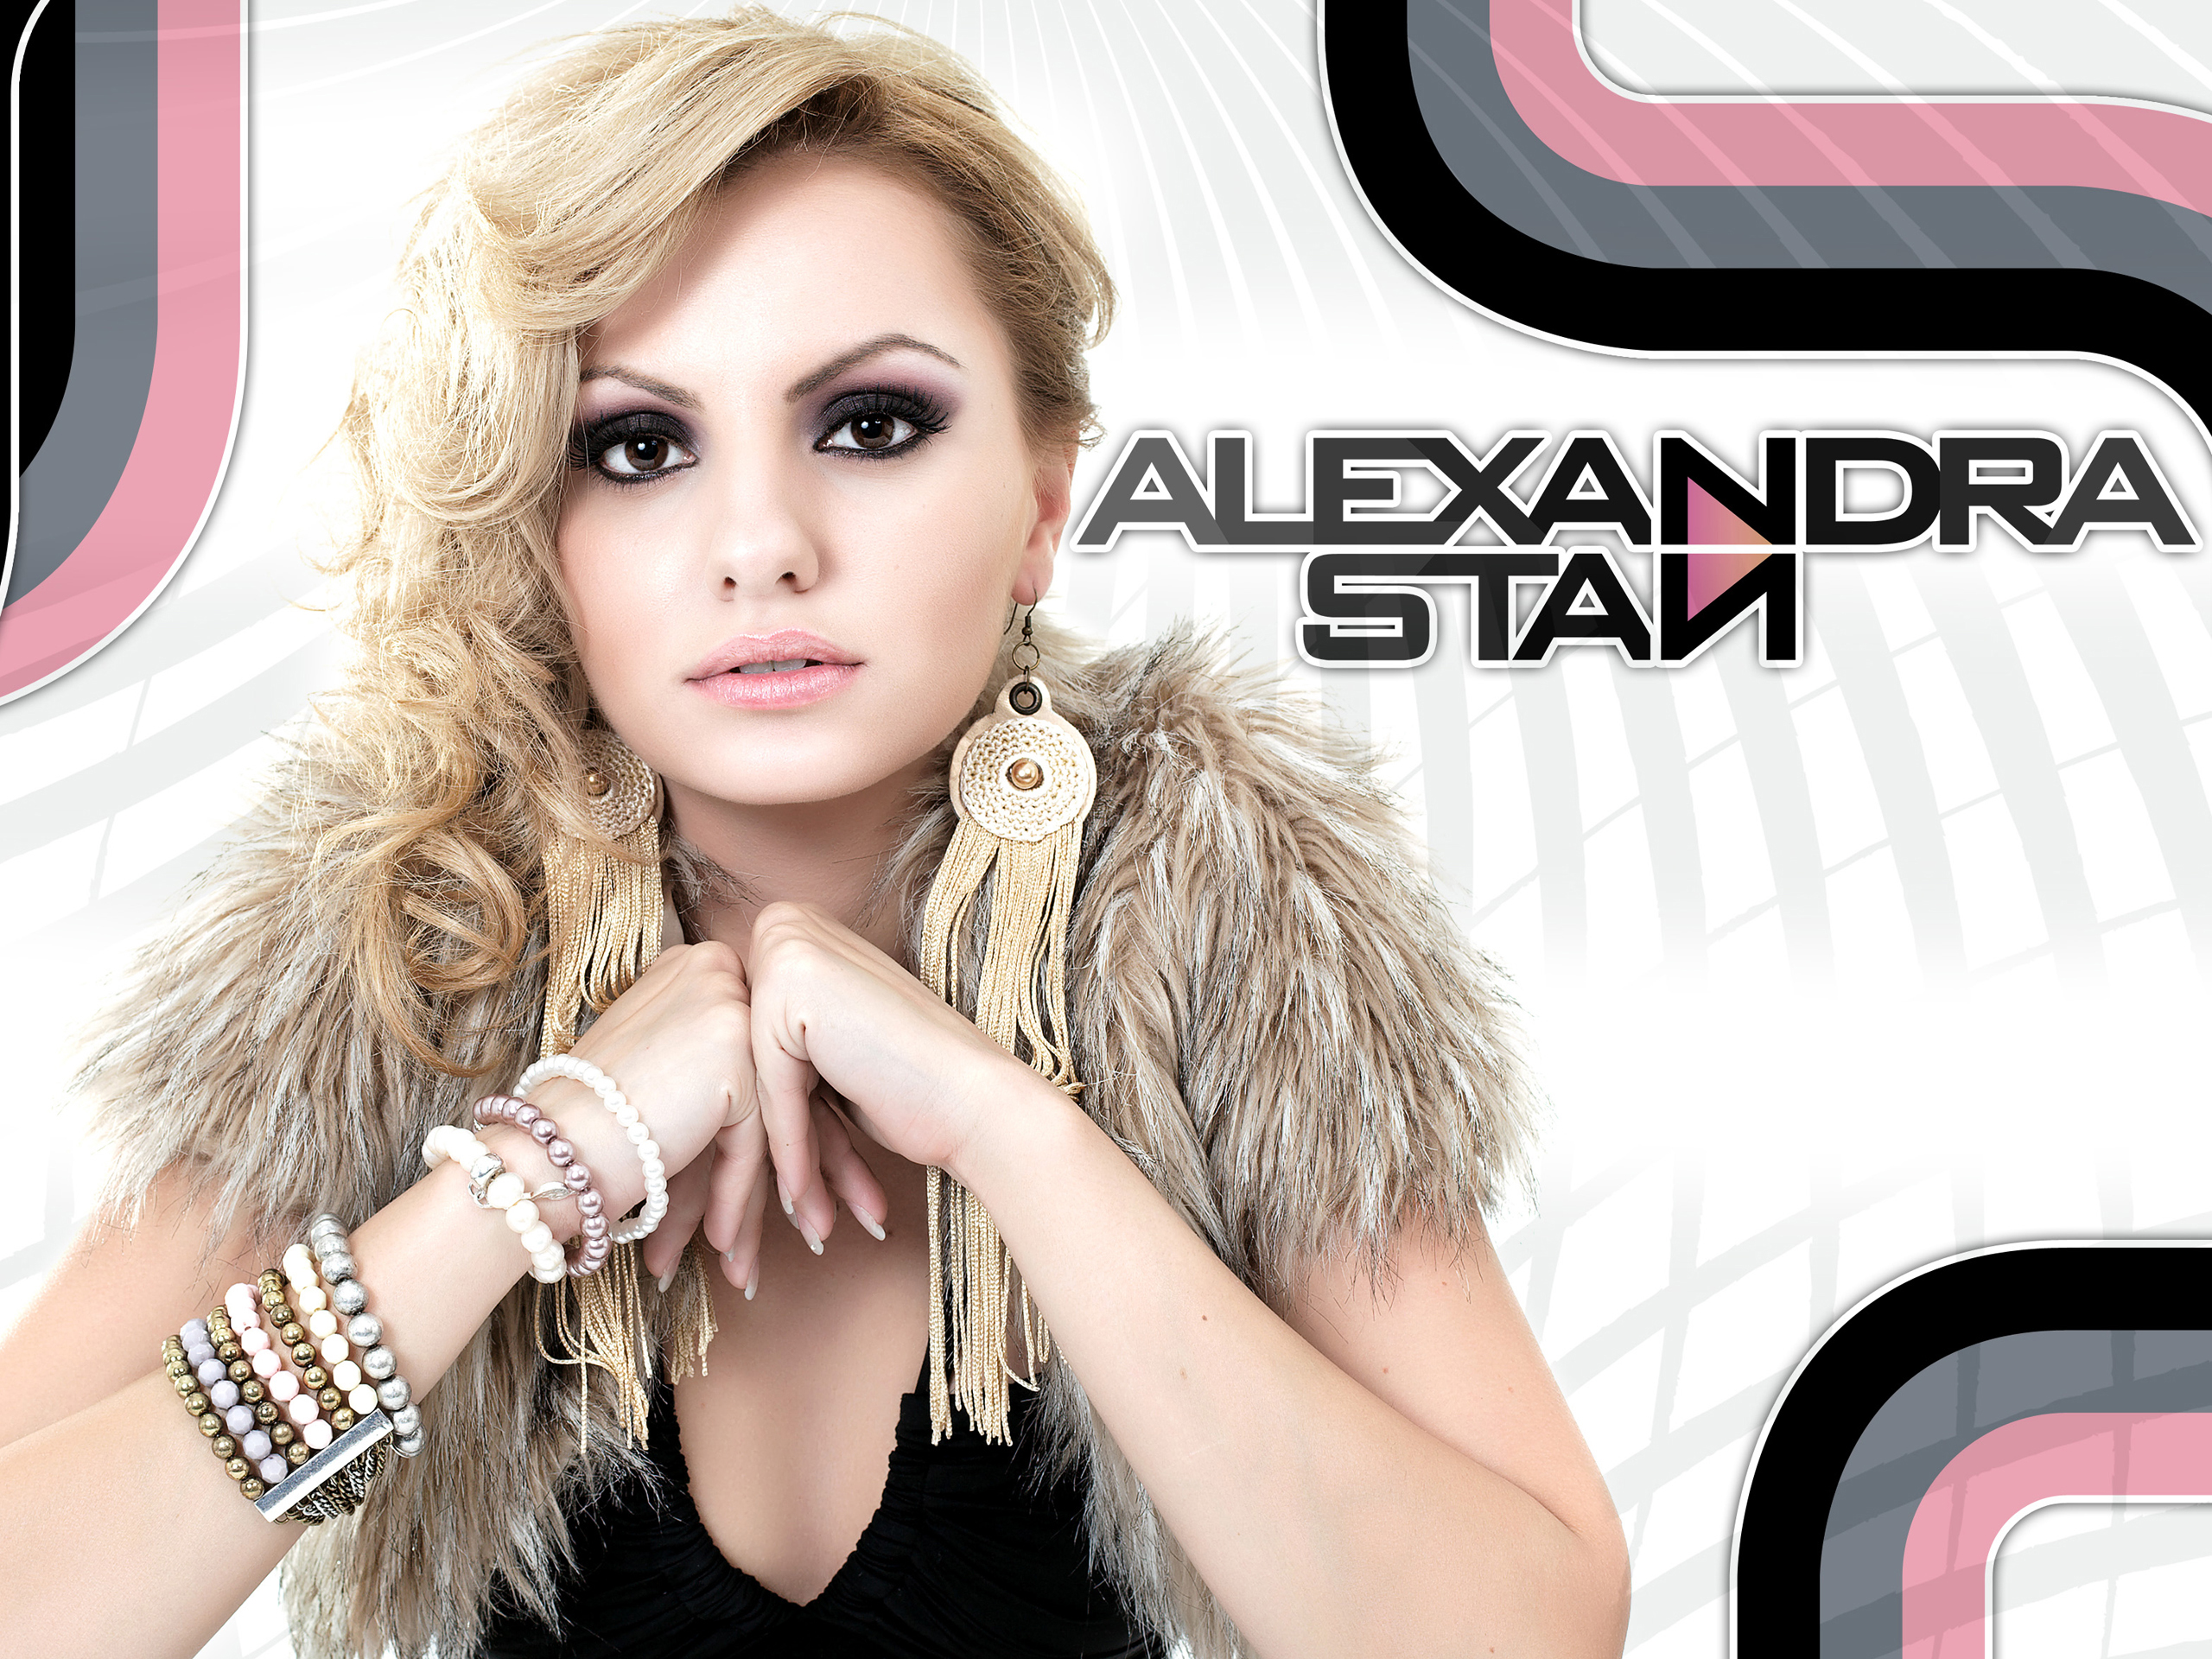 Accept. The Alexandra stan maxim speaking